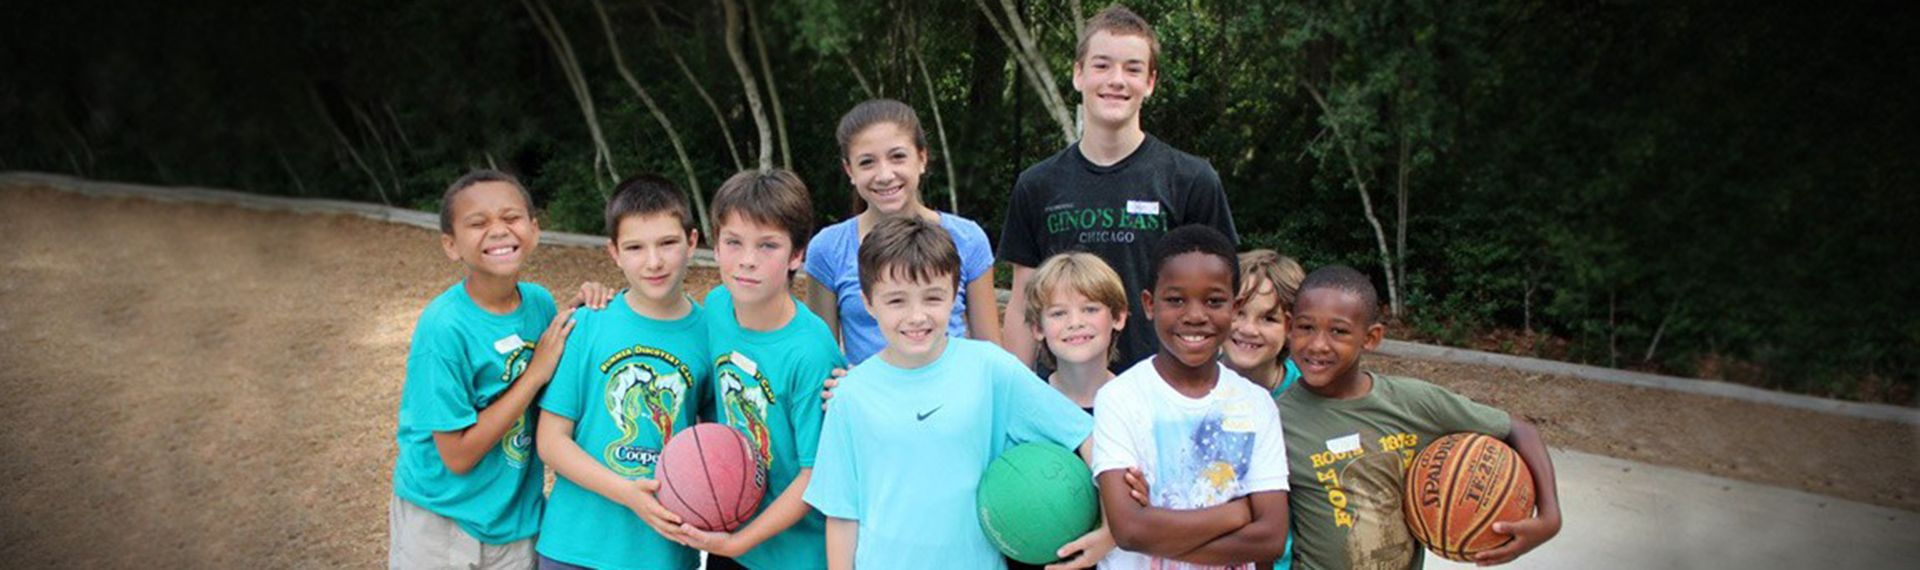 Lower School students pose during playground basketball game.